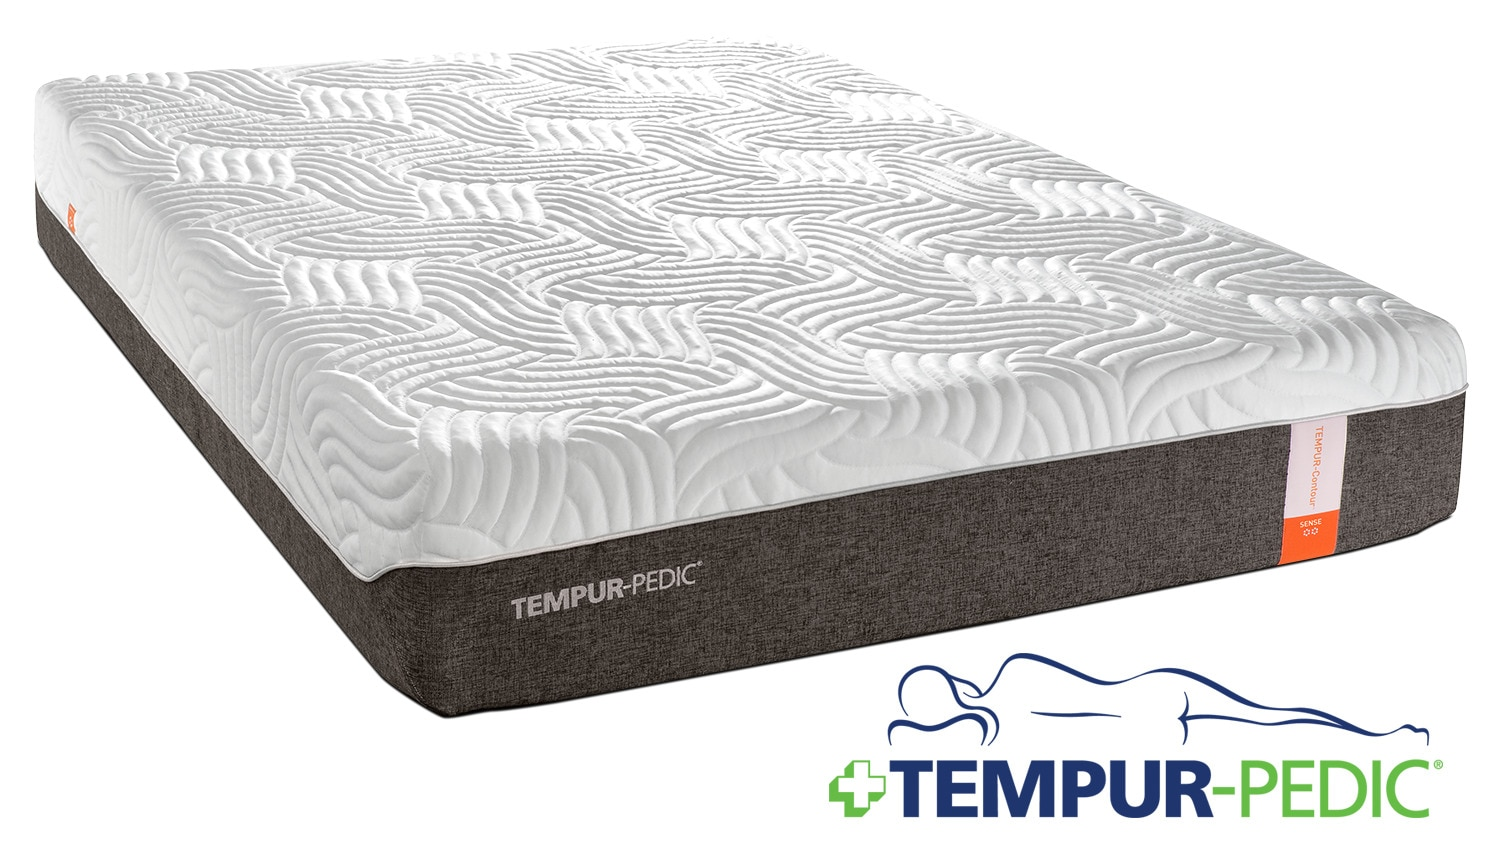 Tempur-Pedic Sense 2.0 Firm Queen Mattress